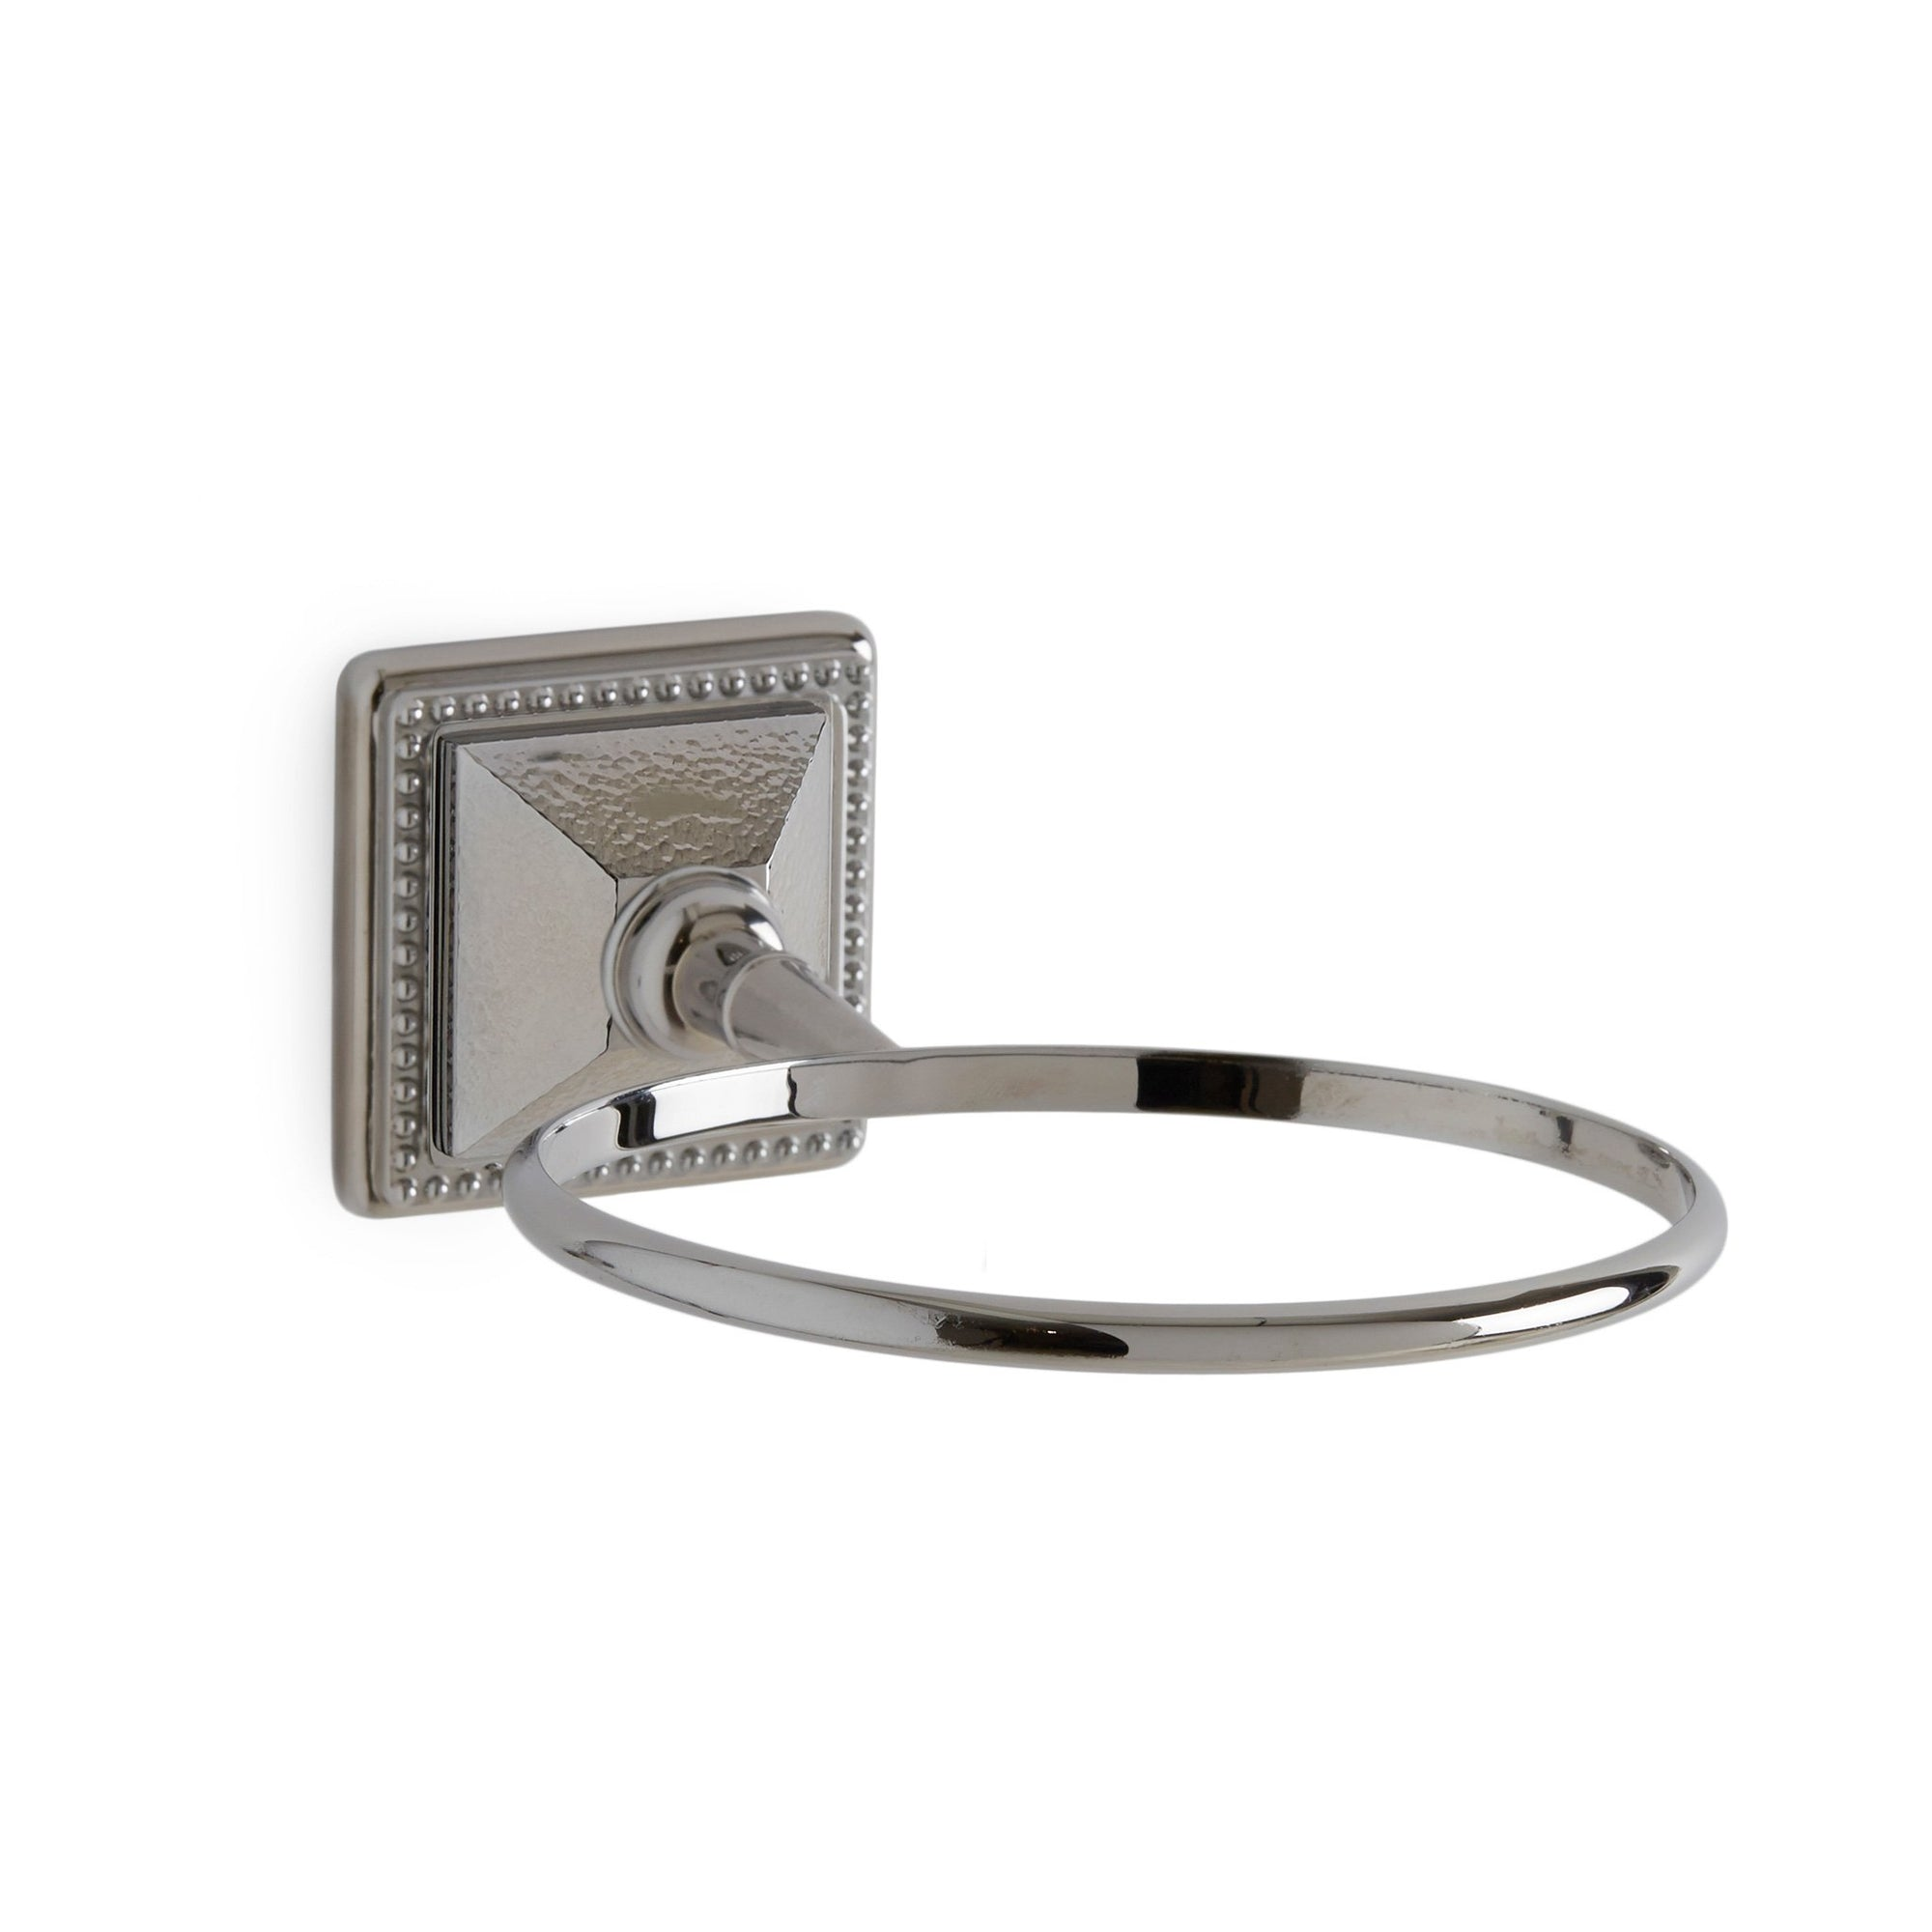 3221-HMRD-CP Sherle Wagner International Hammered Pyramid Soap Dish Holder in Polished Chrome metal finish